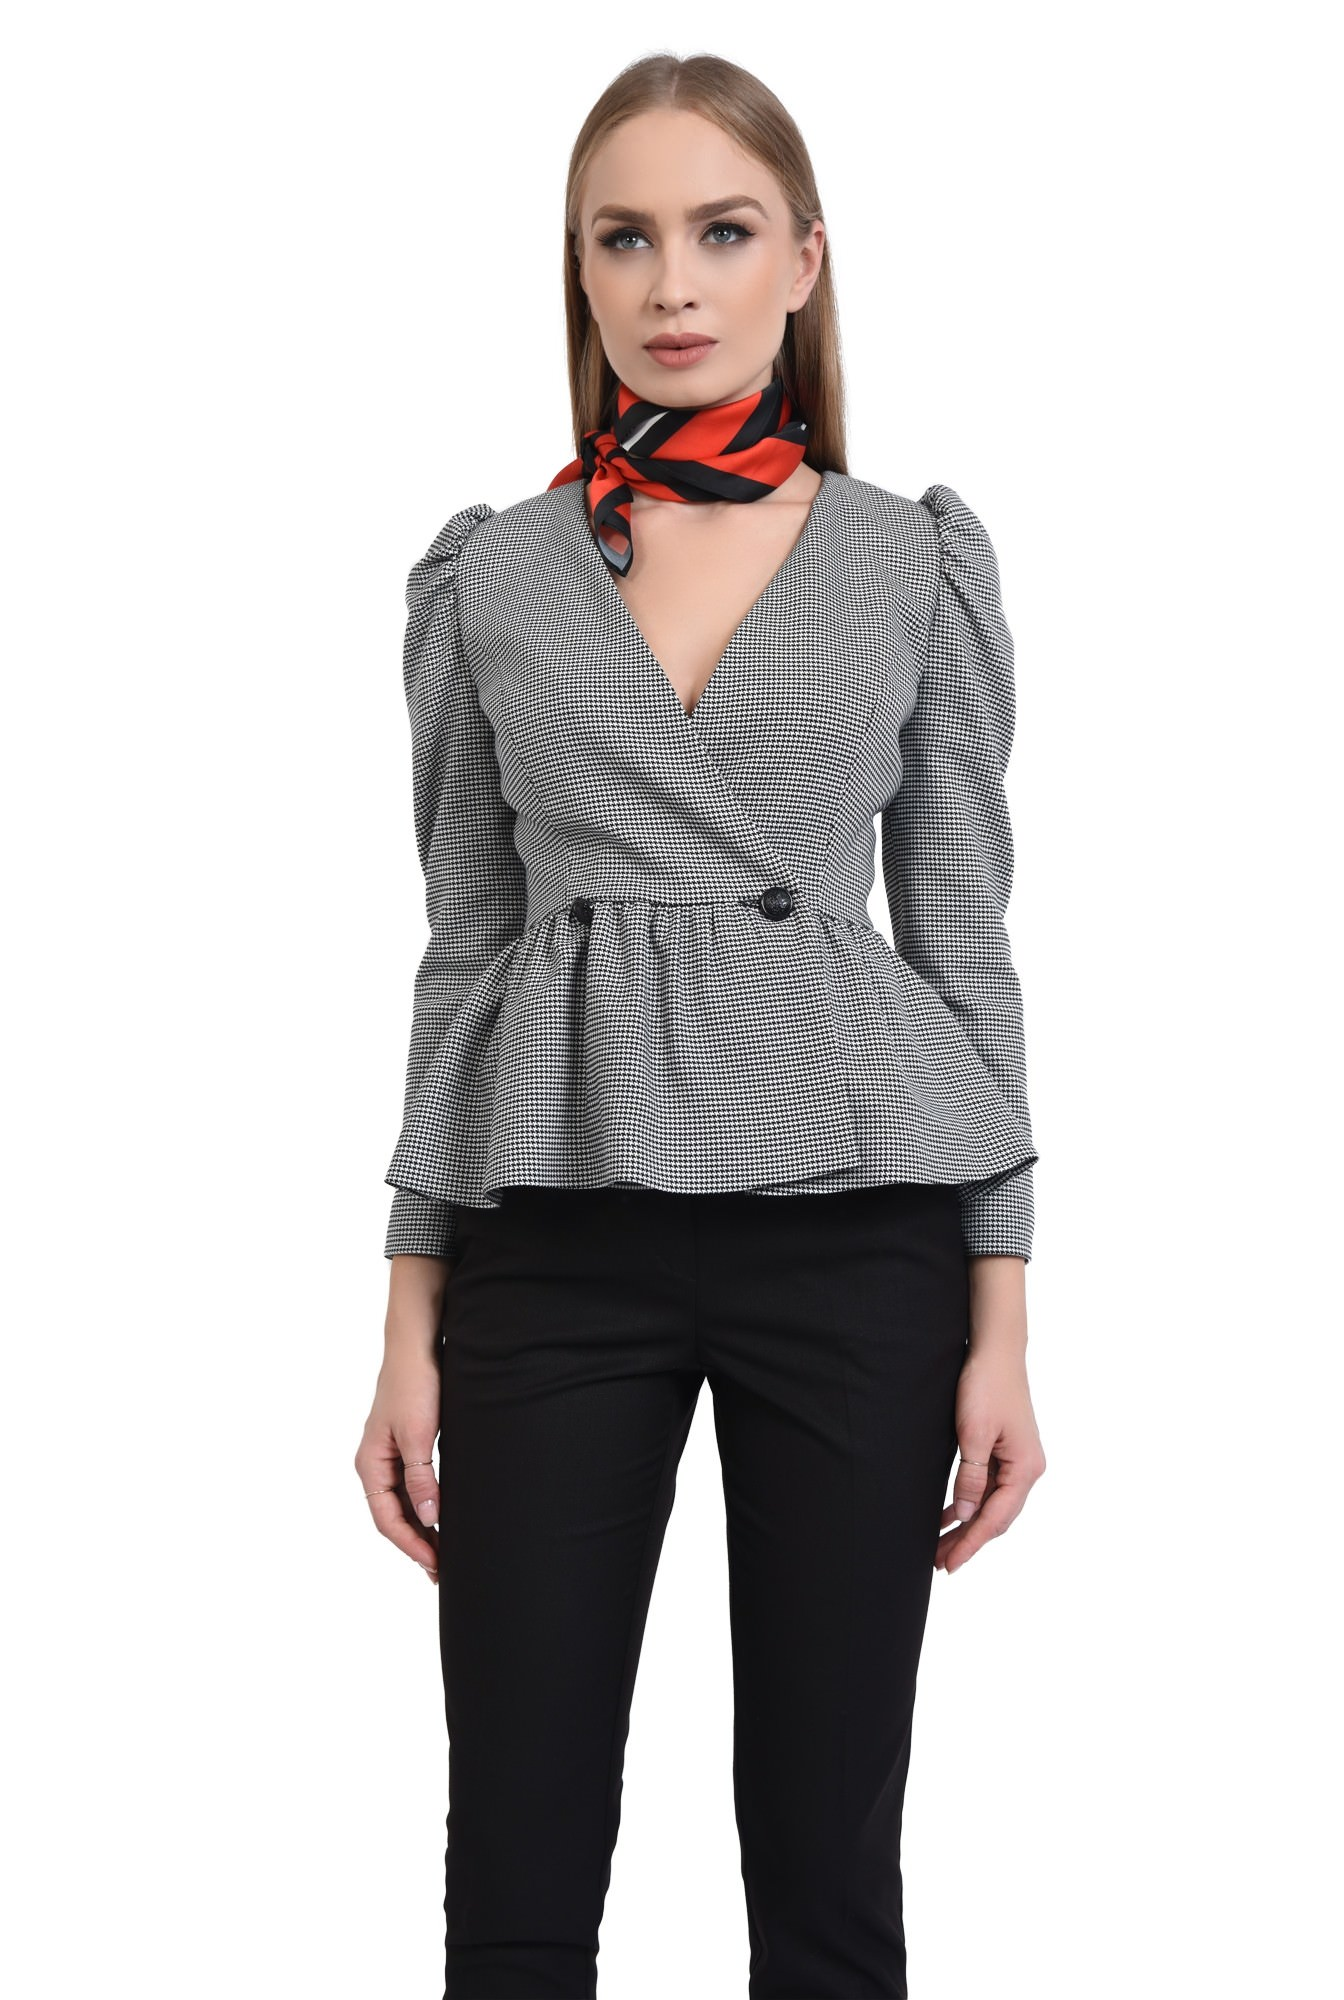 SACOU CASUAL S 130-PEPIT